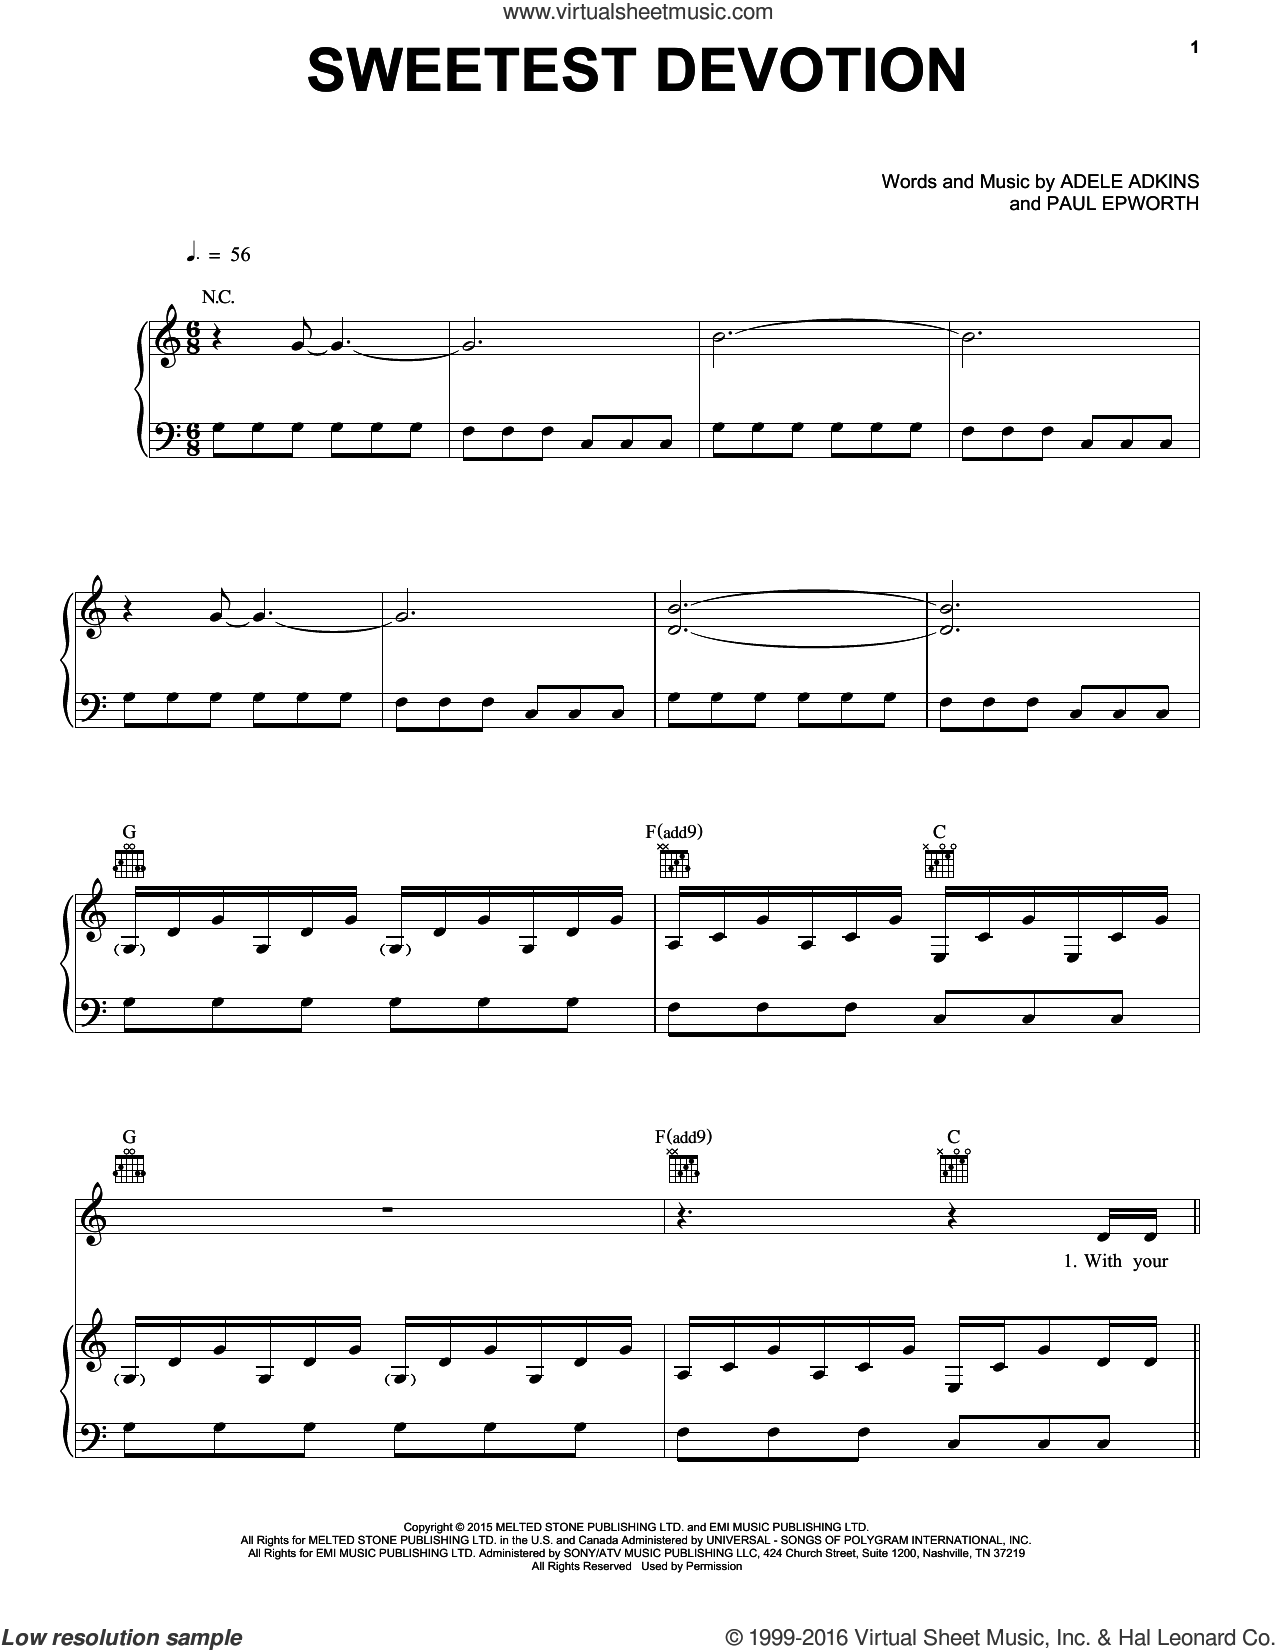 Sweetest Devotion sheet music for voice, piano or guitar by Paul Epworth, Adele and Adele Adkins. Score Image Preview.